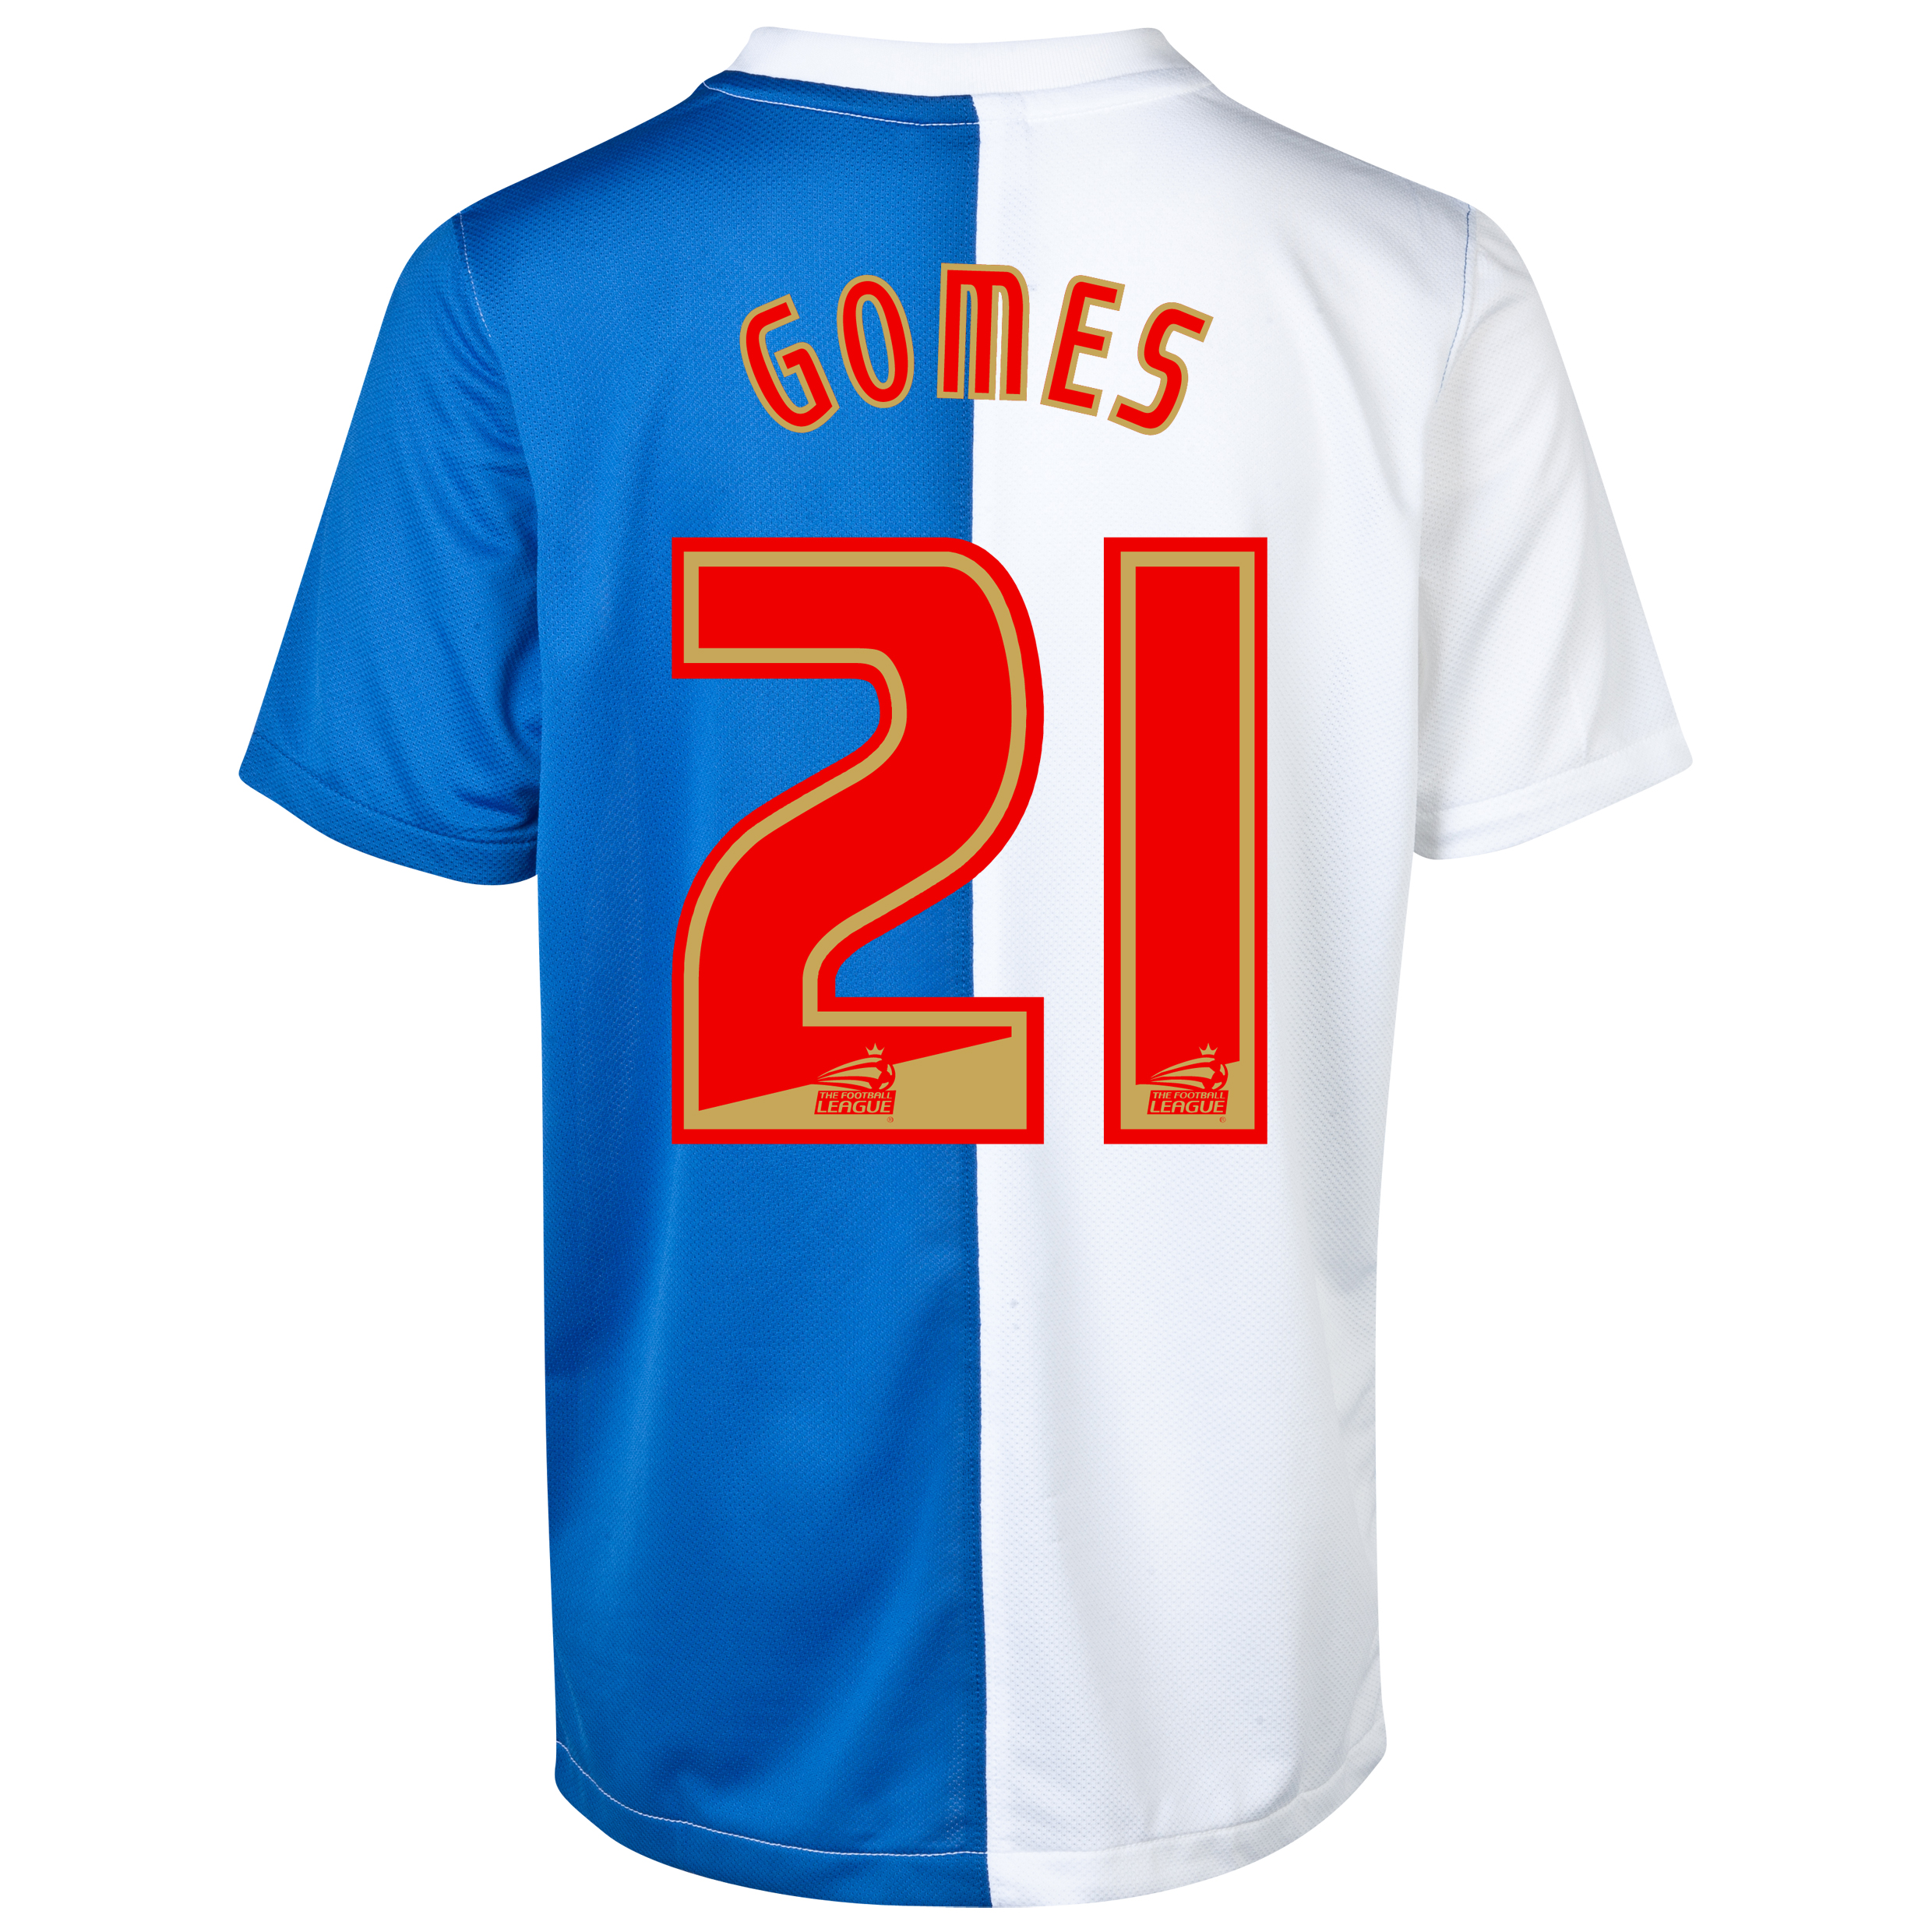 Blackburn Rovers Home Shirt 2013/14 with Gomes 21 printing